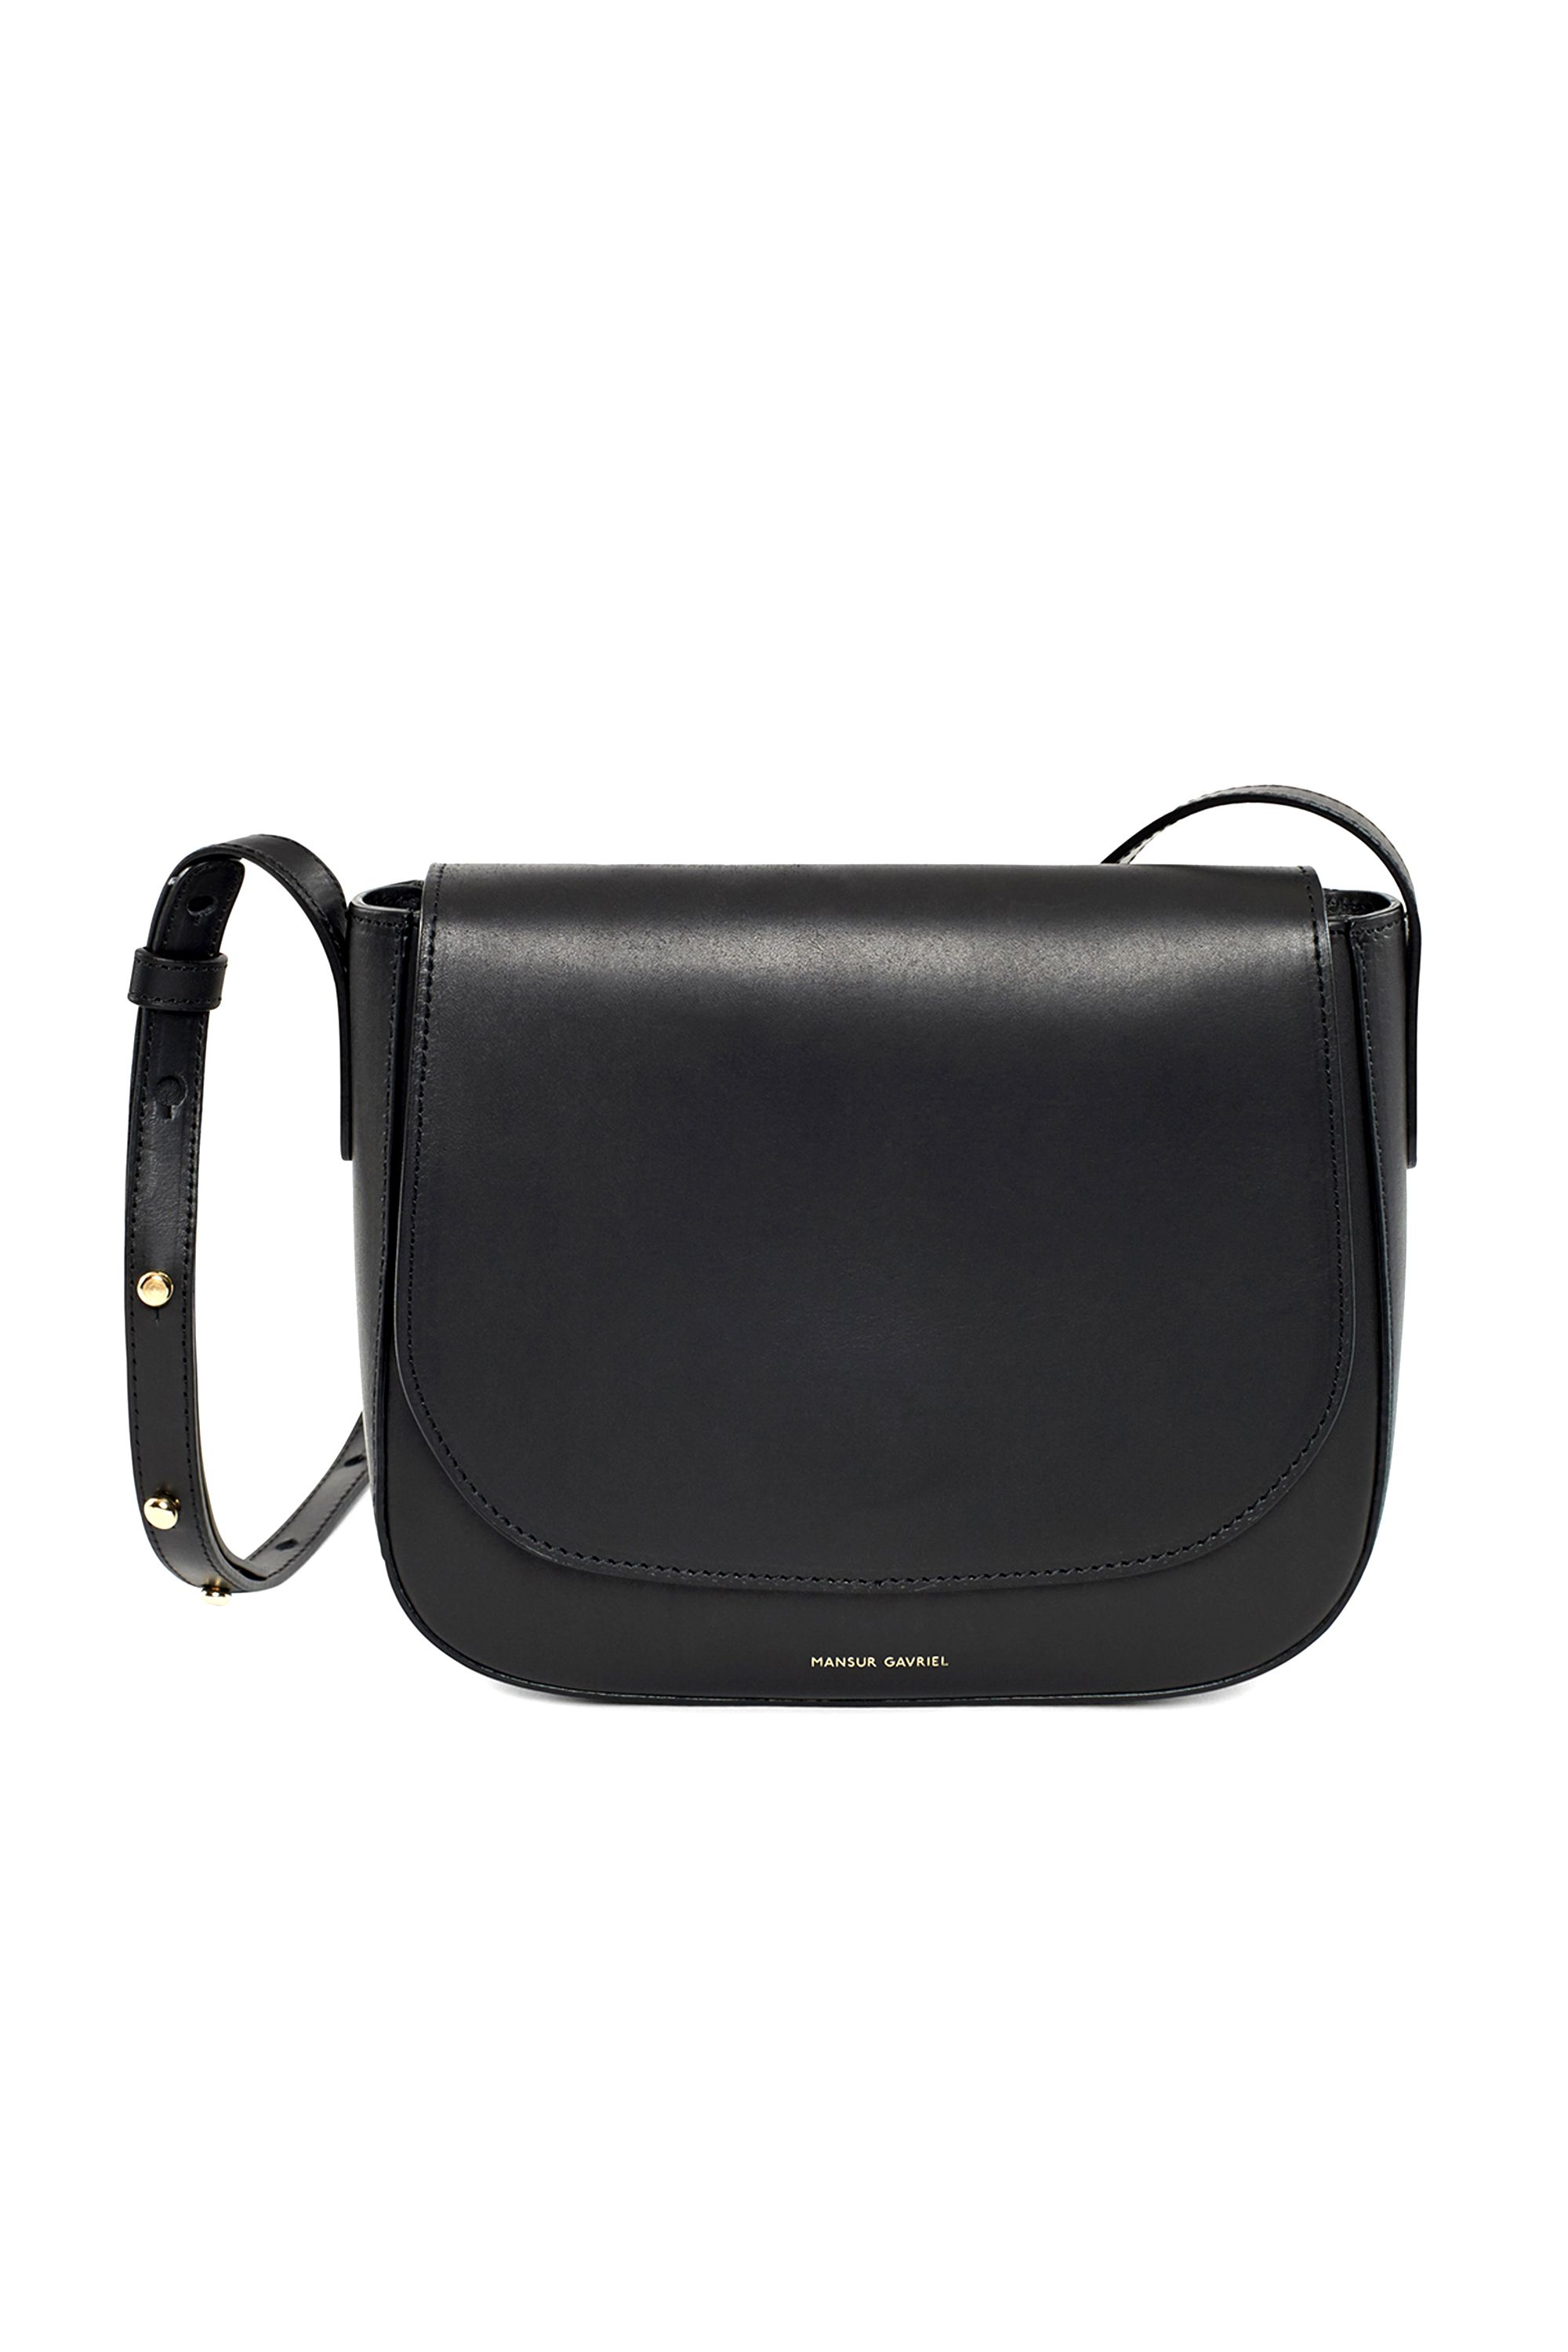 One of 20 Black Crossbody Bags That Work With Everything - MANSUR GAVRIEL  ( ) 09f52b3e92e38